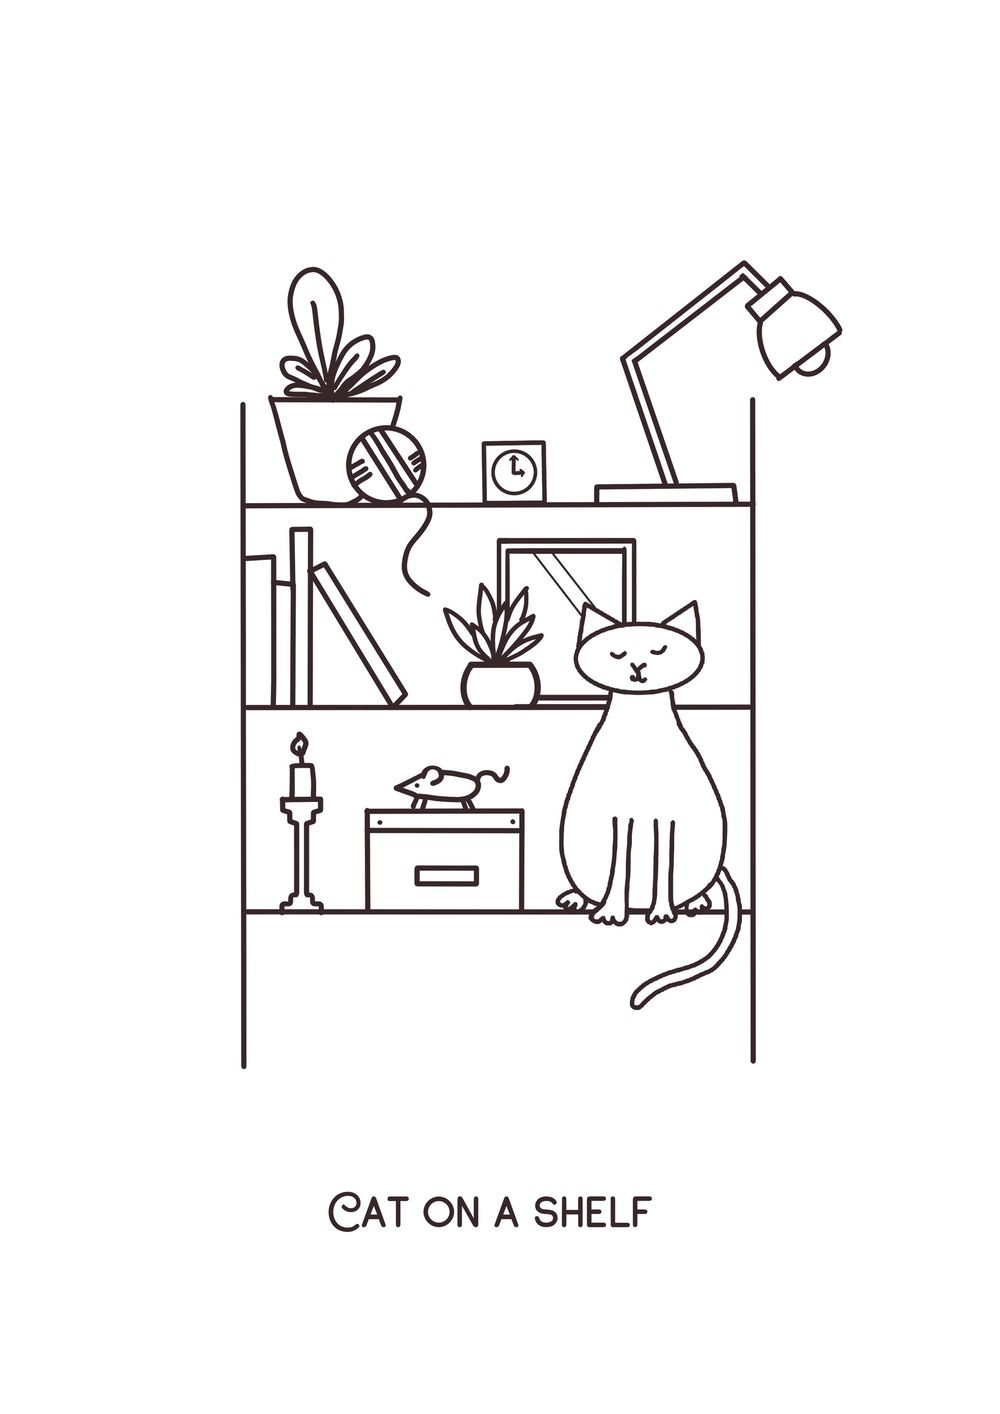 Cat on a shelf - image 1 - student project